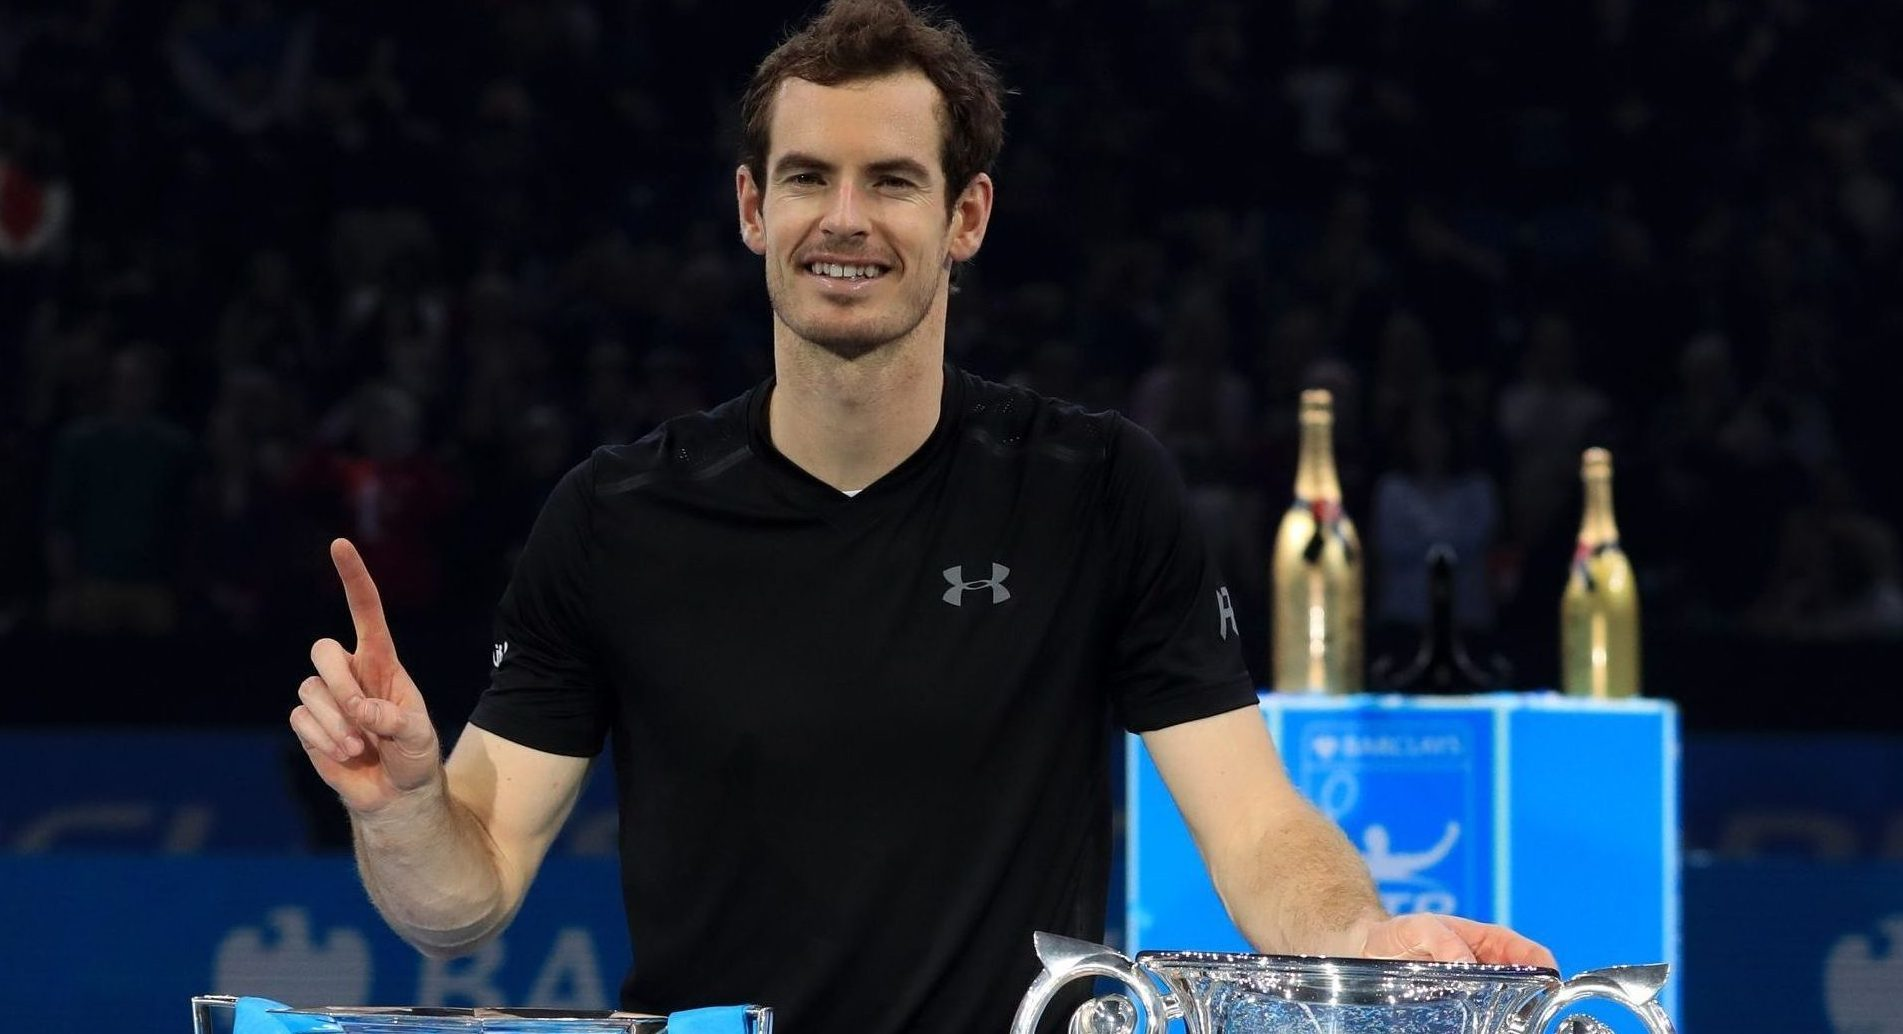 Andy Murray has reached the top of tennis in 2016.